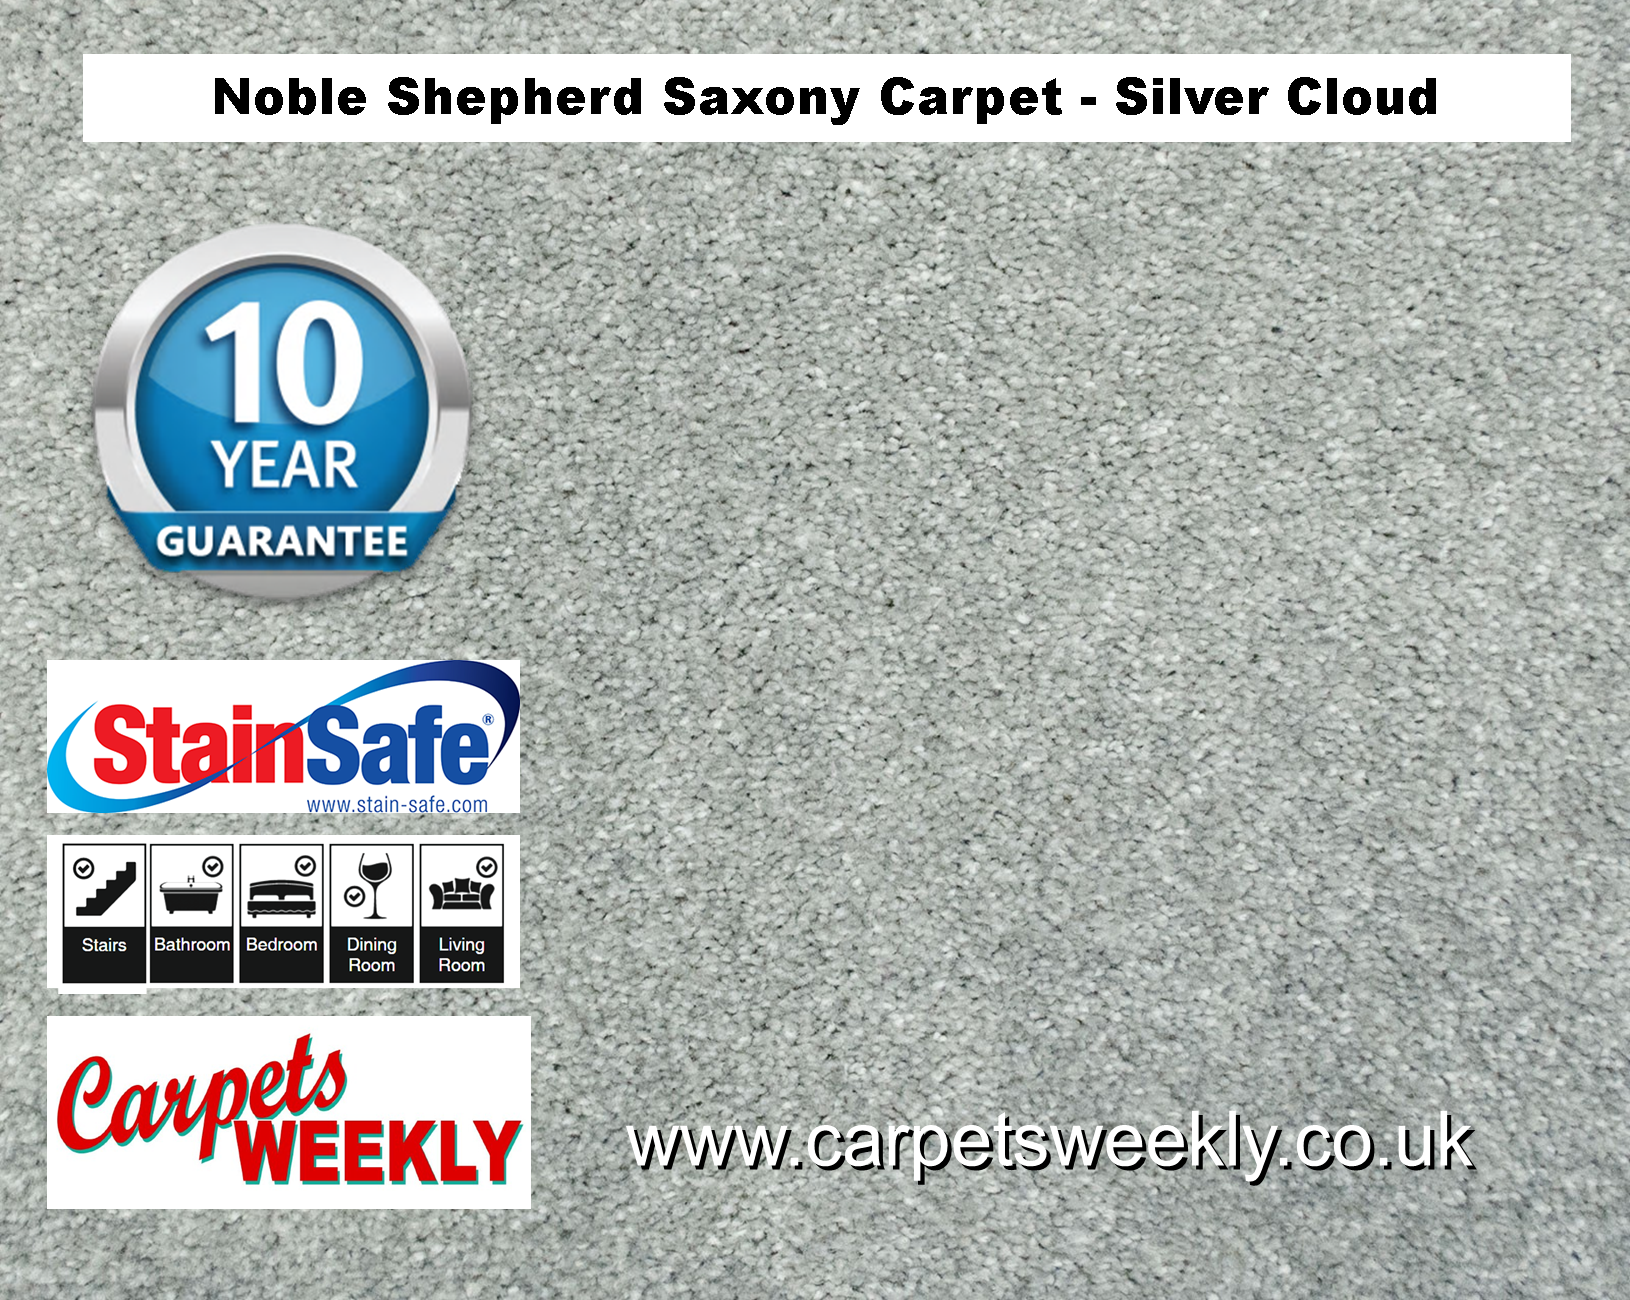 Noble Shepherd Saxony Carpet from Carpets Weekly SILVER CLOUD